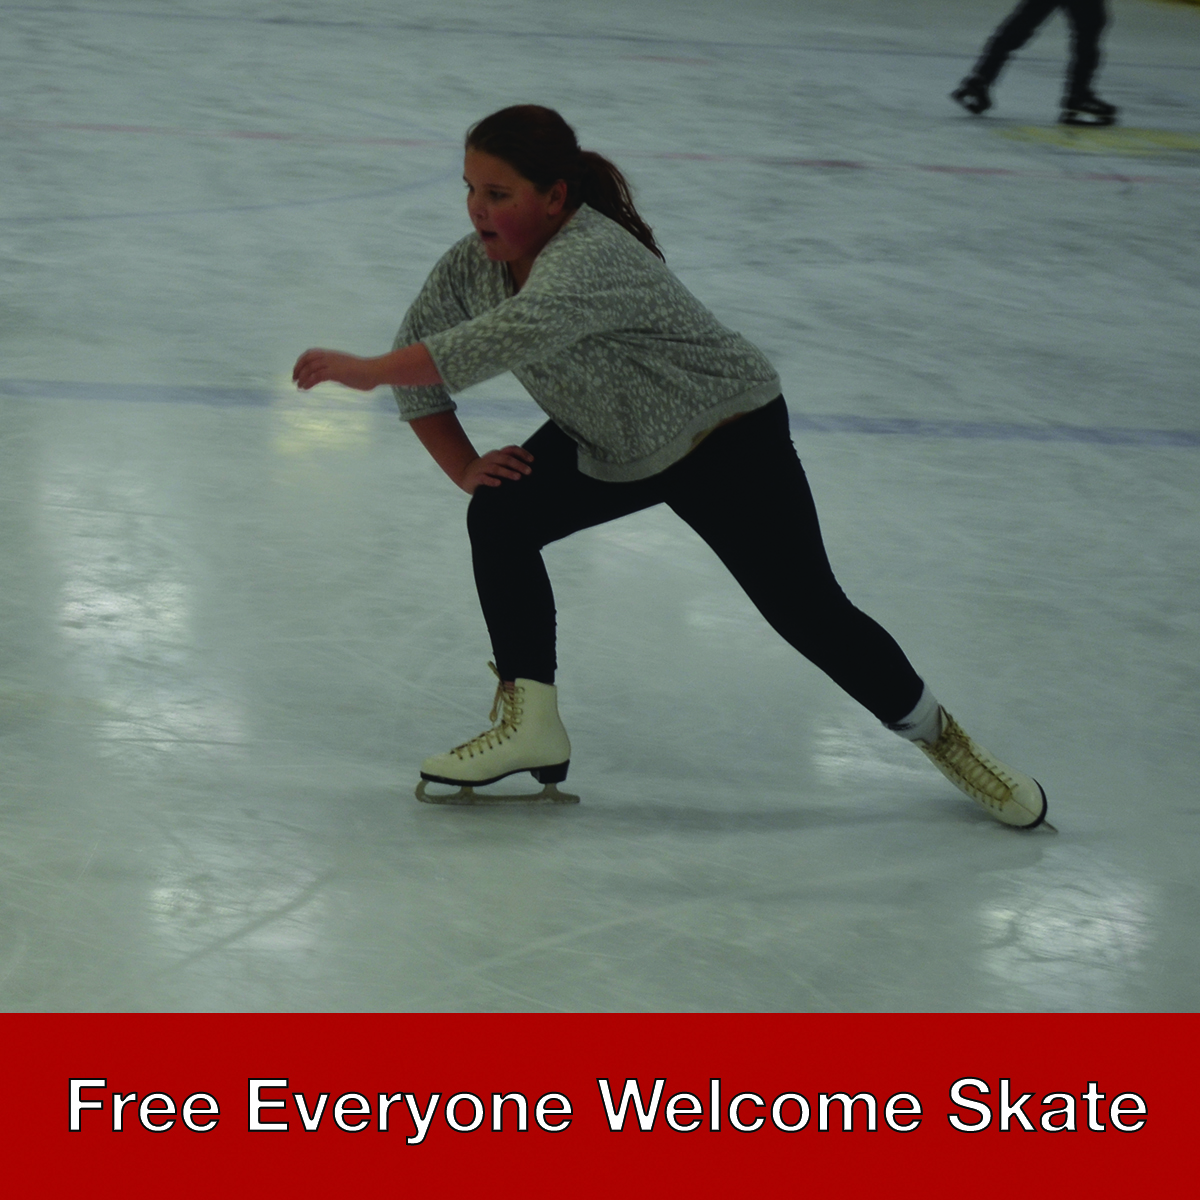 Free Everyone Welcome Skate